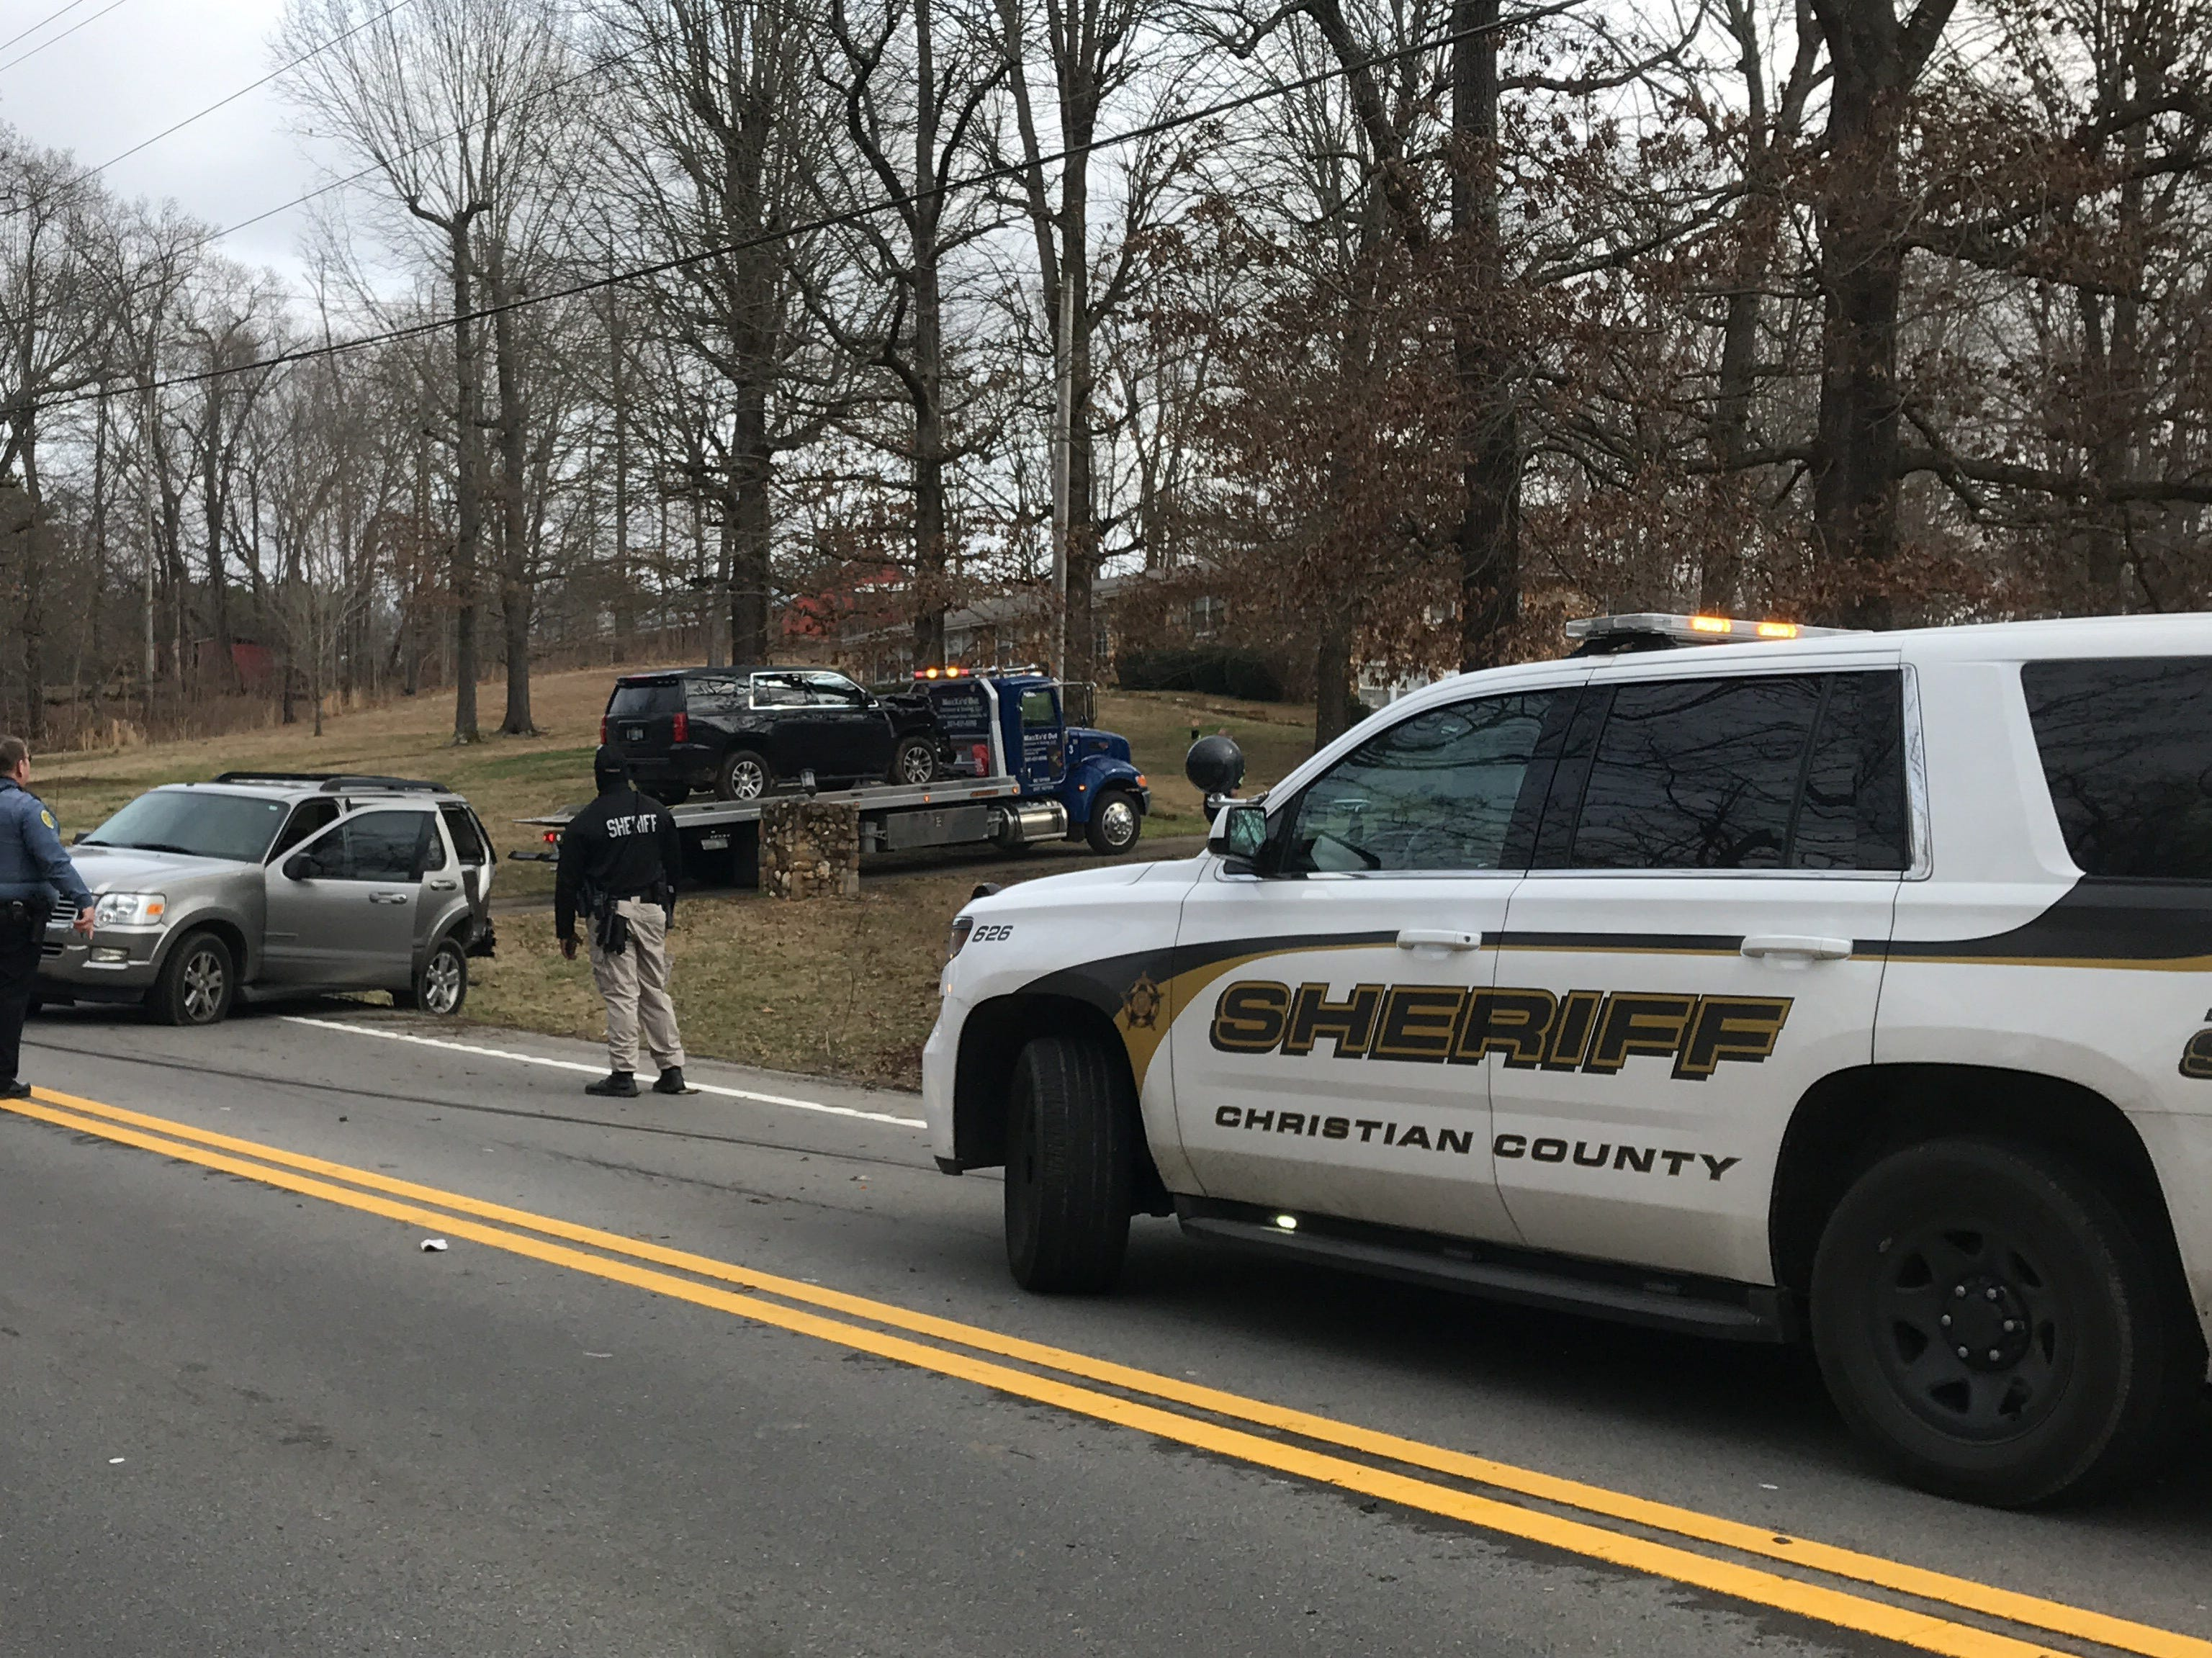 Two vehicles crashed during the capture of a Hopkinsville police shooting suspect on Highway 48/13 in Montgomery County on Monday, Feb. 18, 2019.